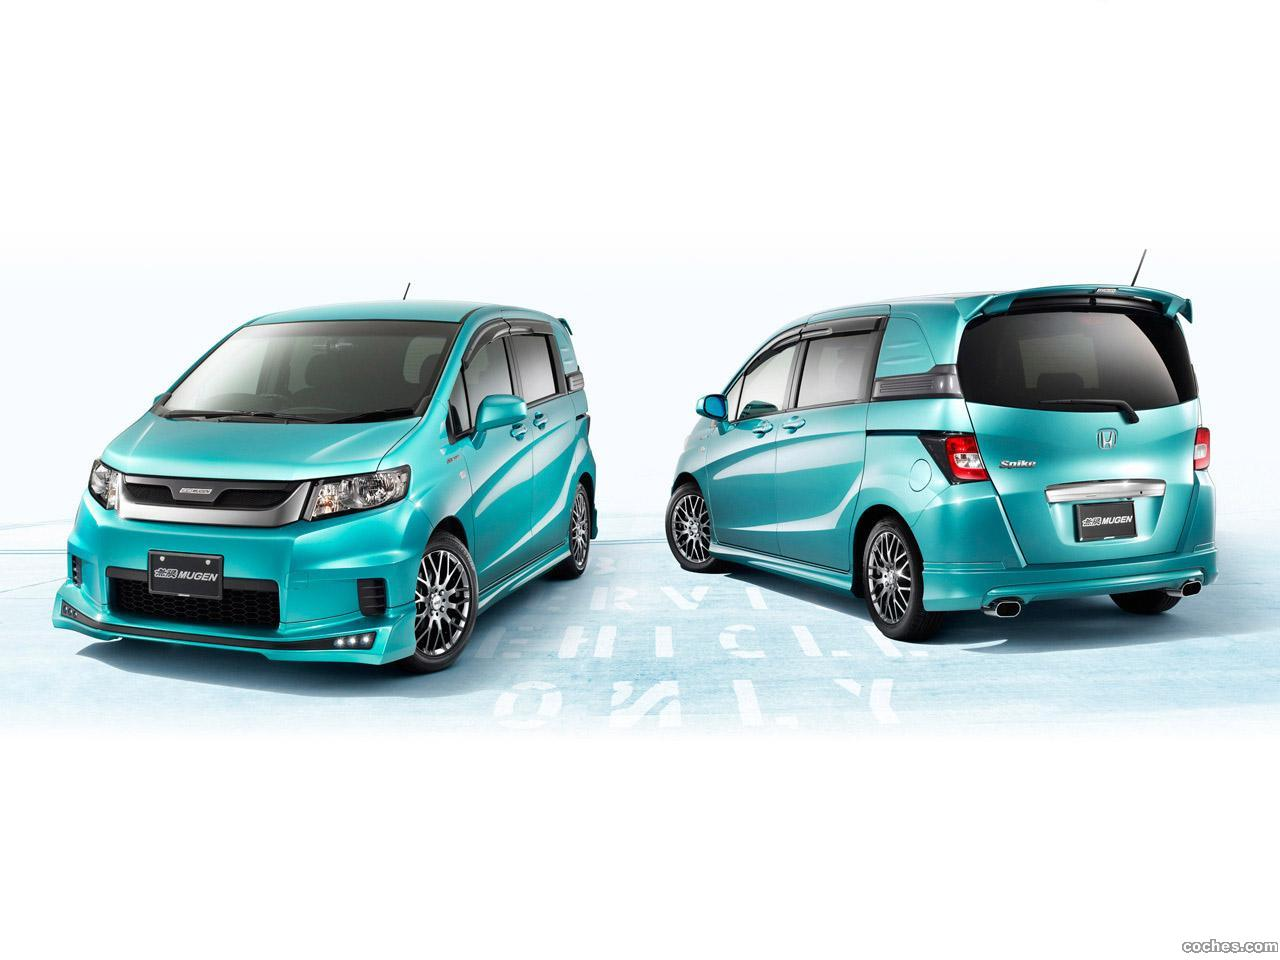 Foto 2 de Mugen Honda Freed Spike 2010